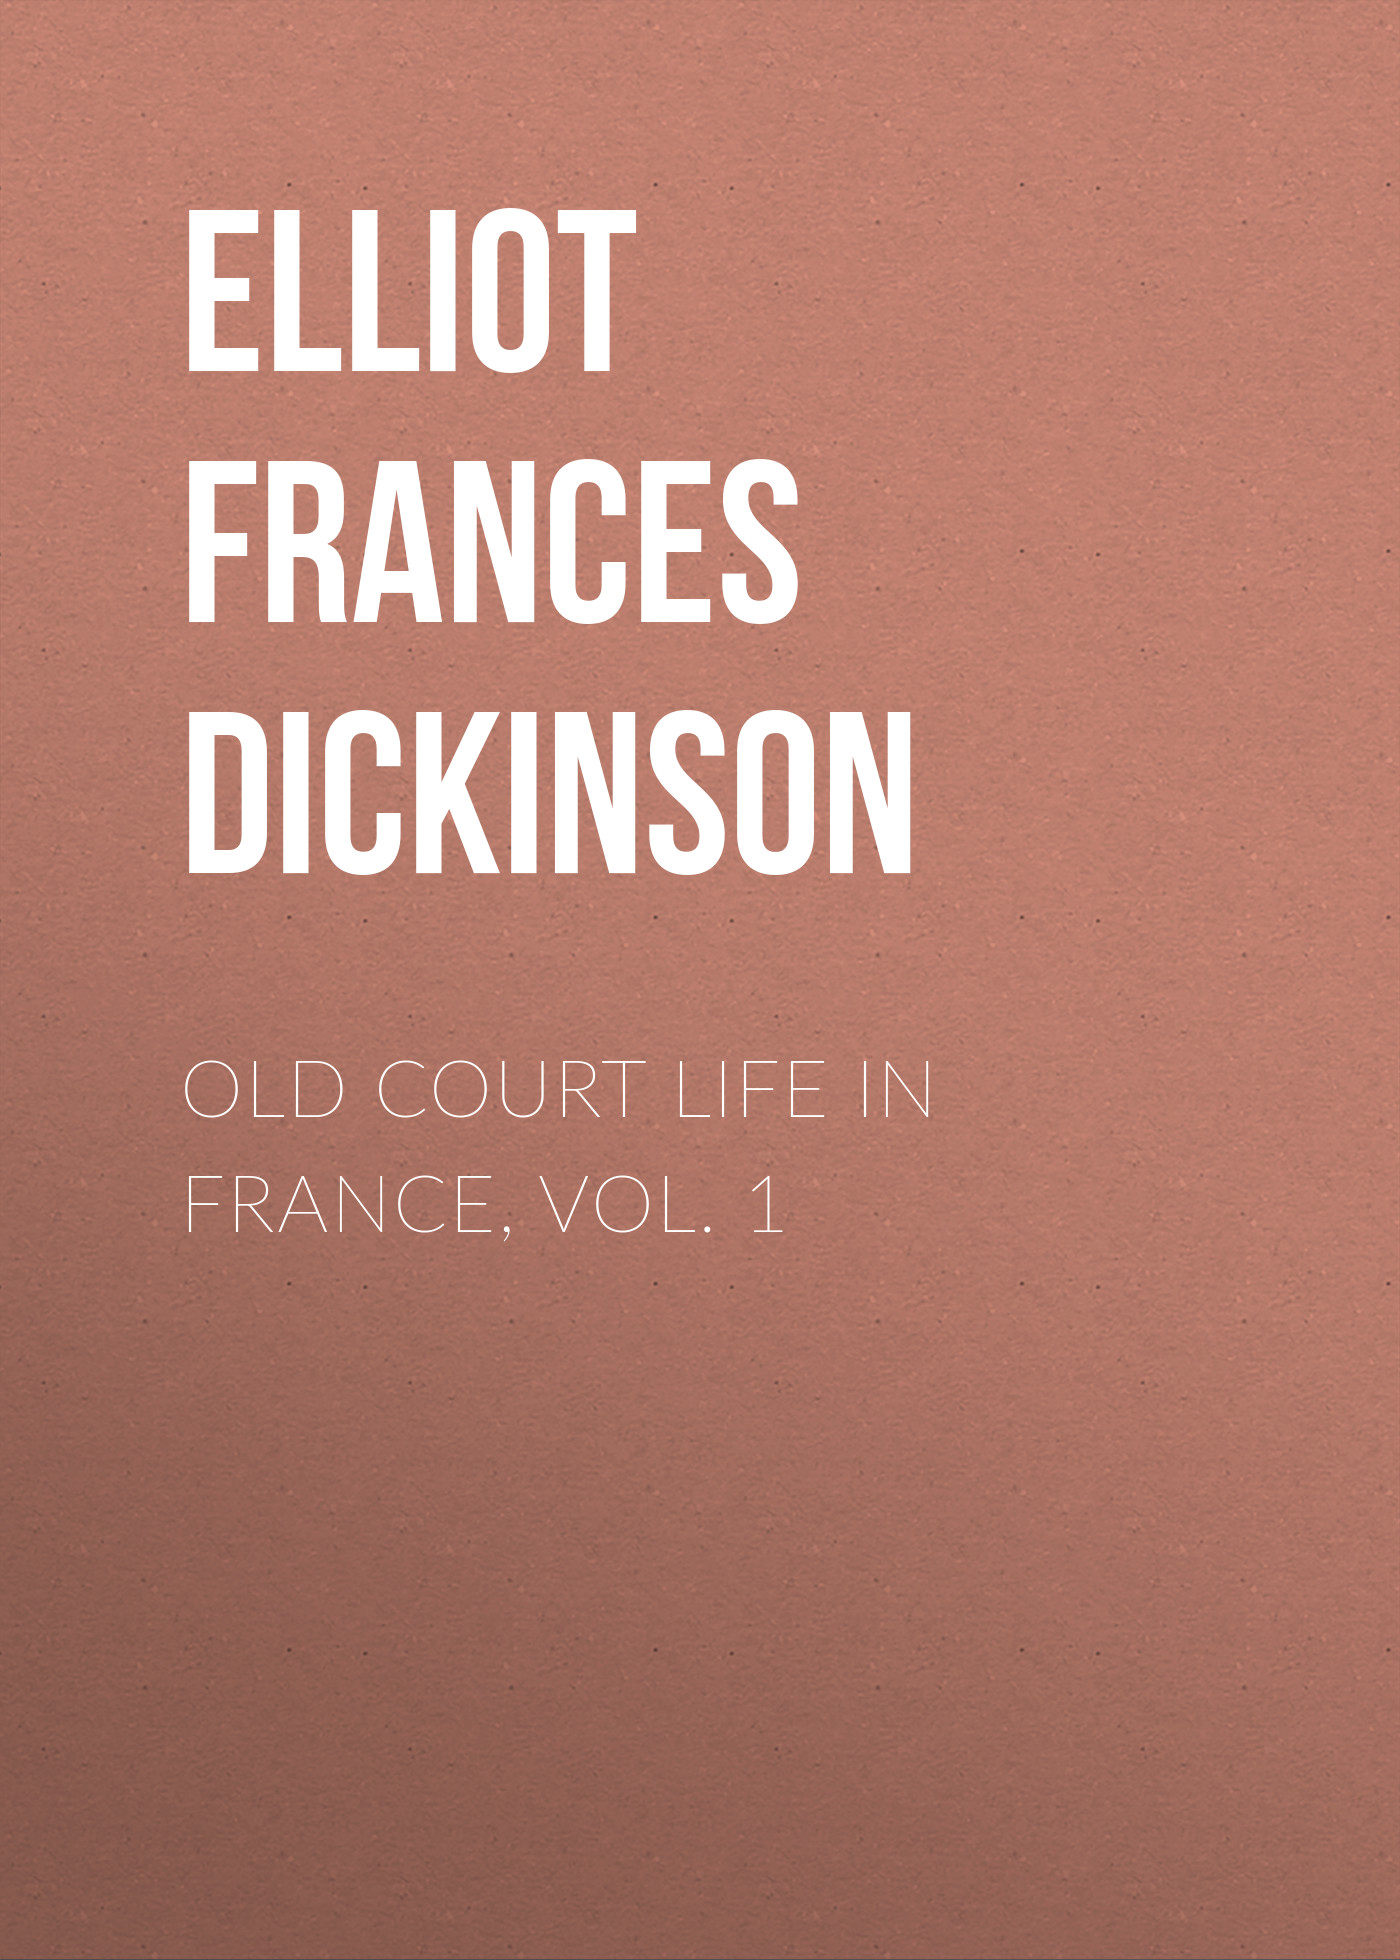 Old Court Life in France, vol. 1